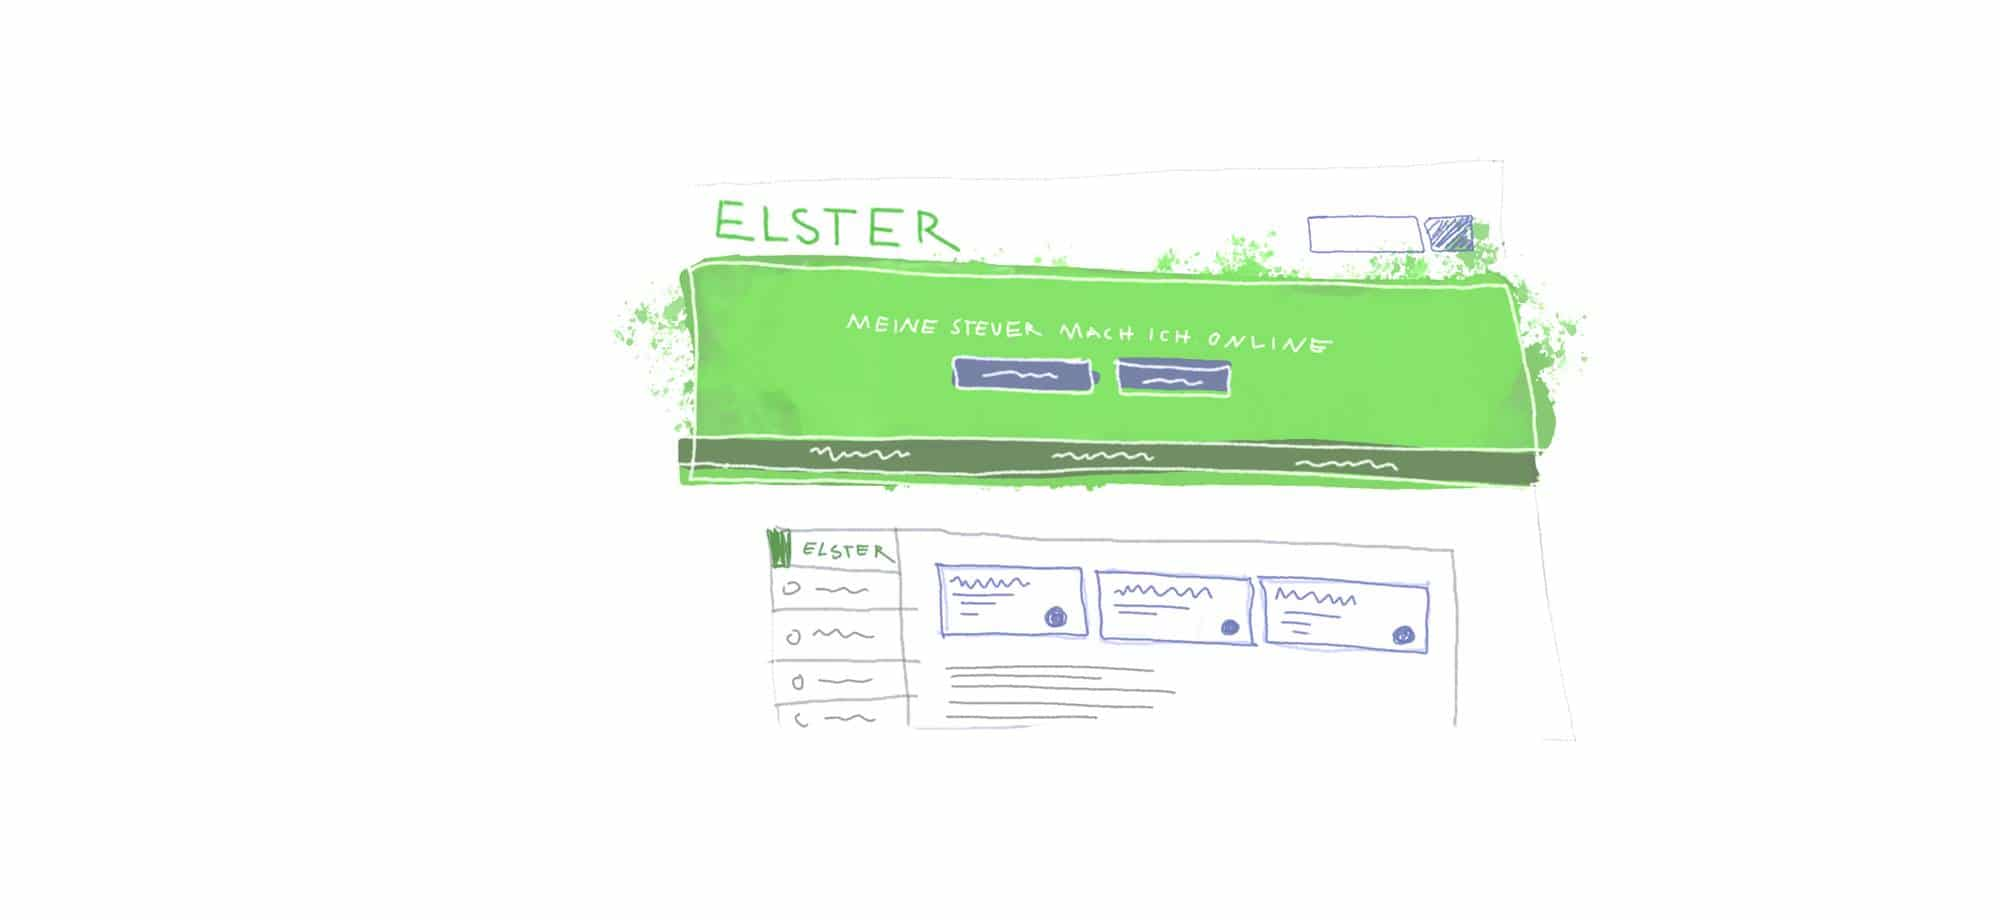 Elster.de relaunches ElsterOnline portal with new design and support for mobile devices